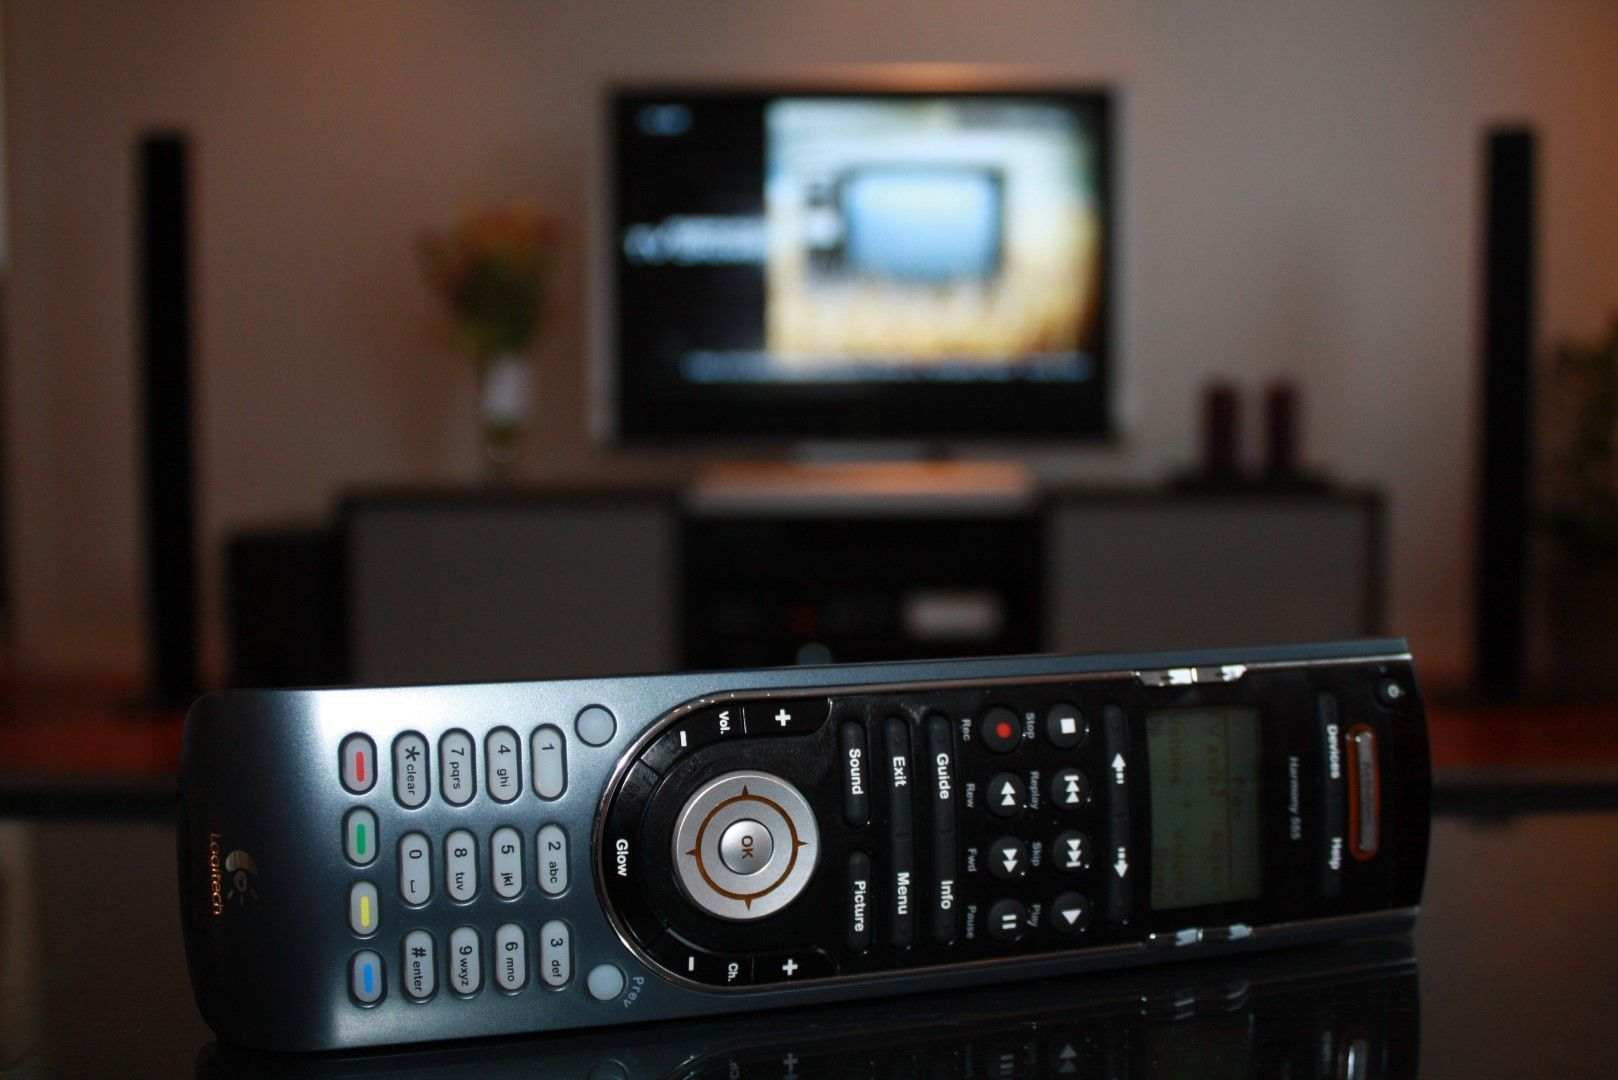 A Logitech Harmony 555 remote with an LCD screen, a D-pad, and a number of TV and media keys.